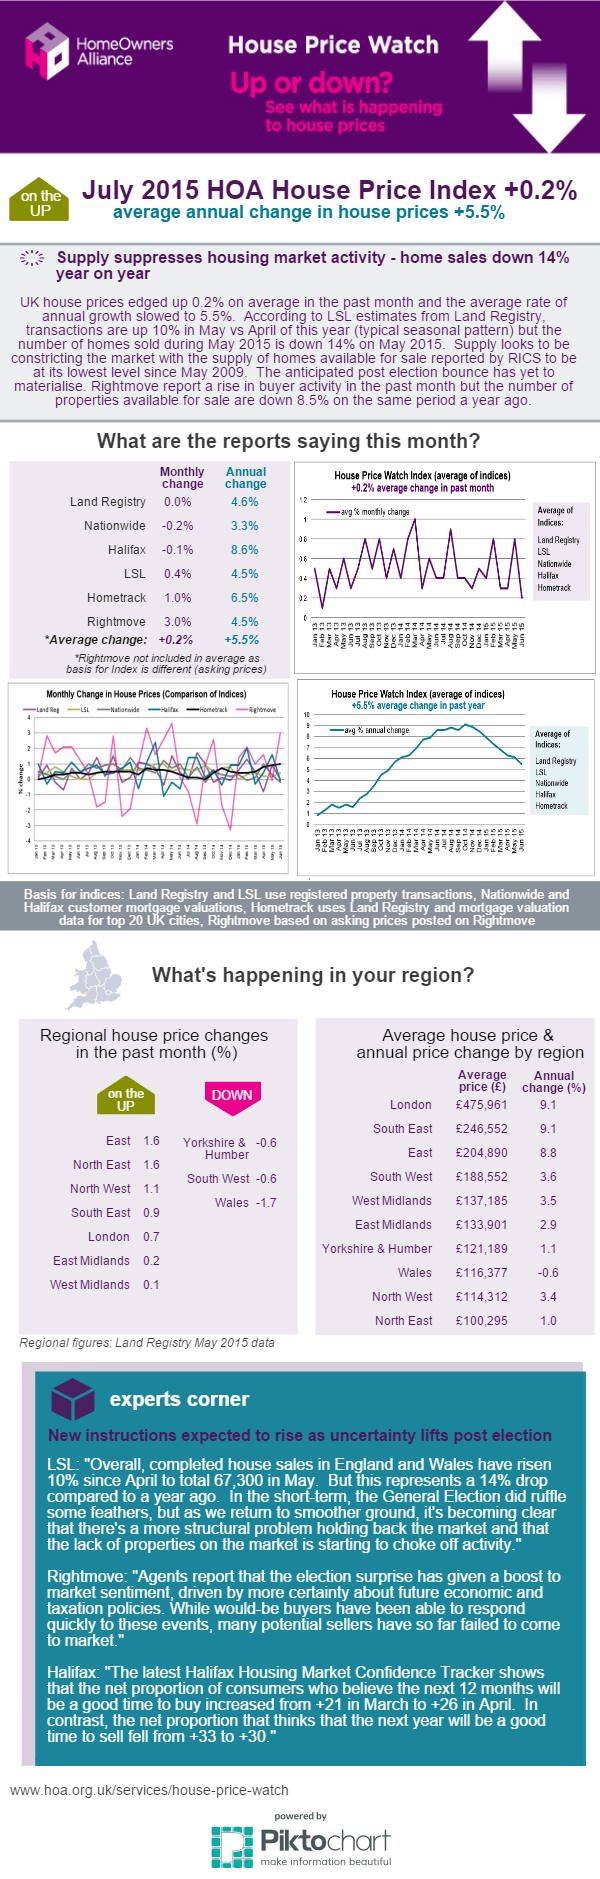 housepricewatch Infographic_july-2015